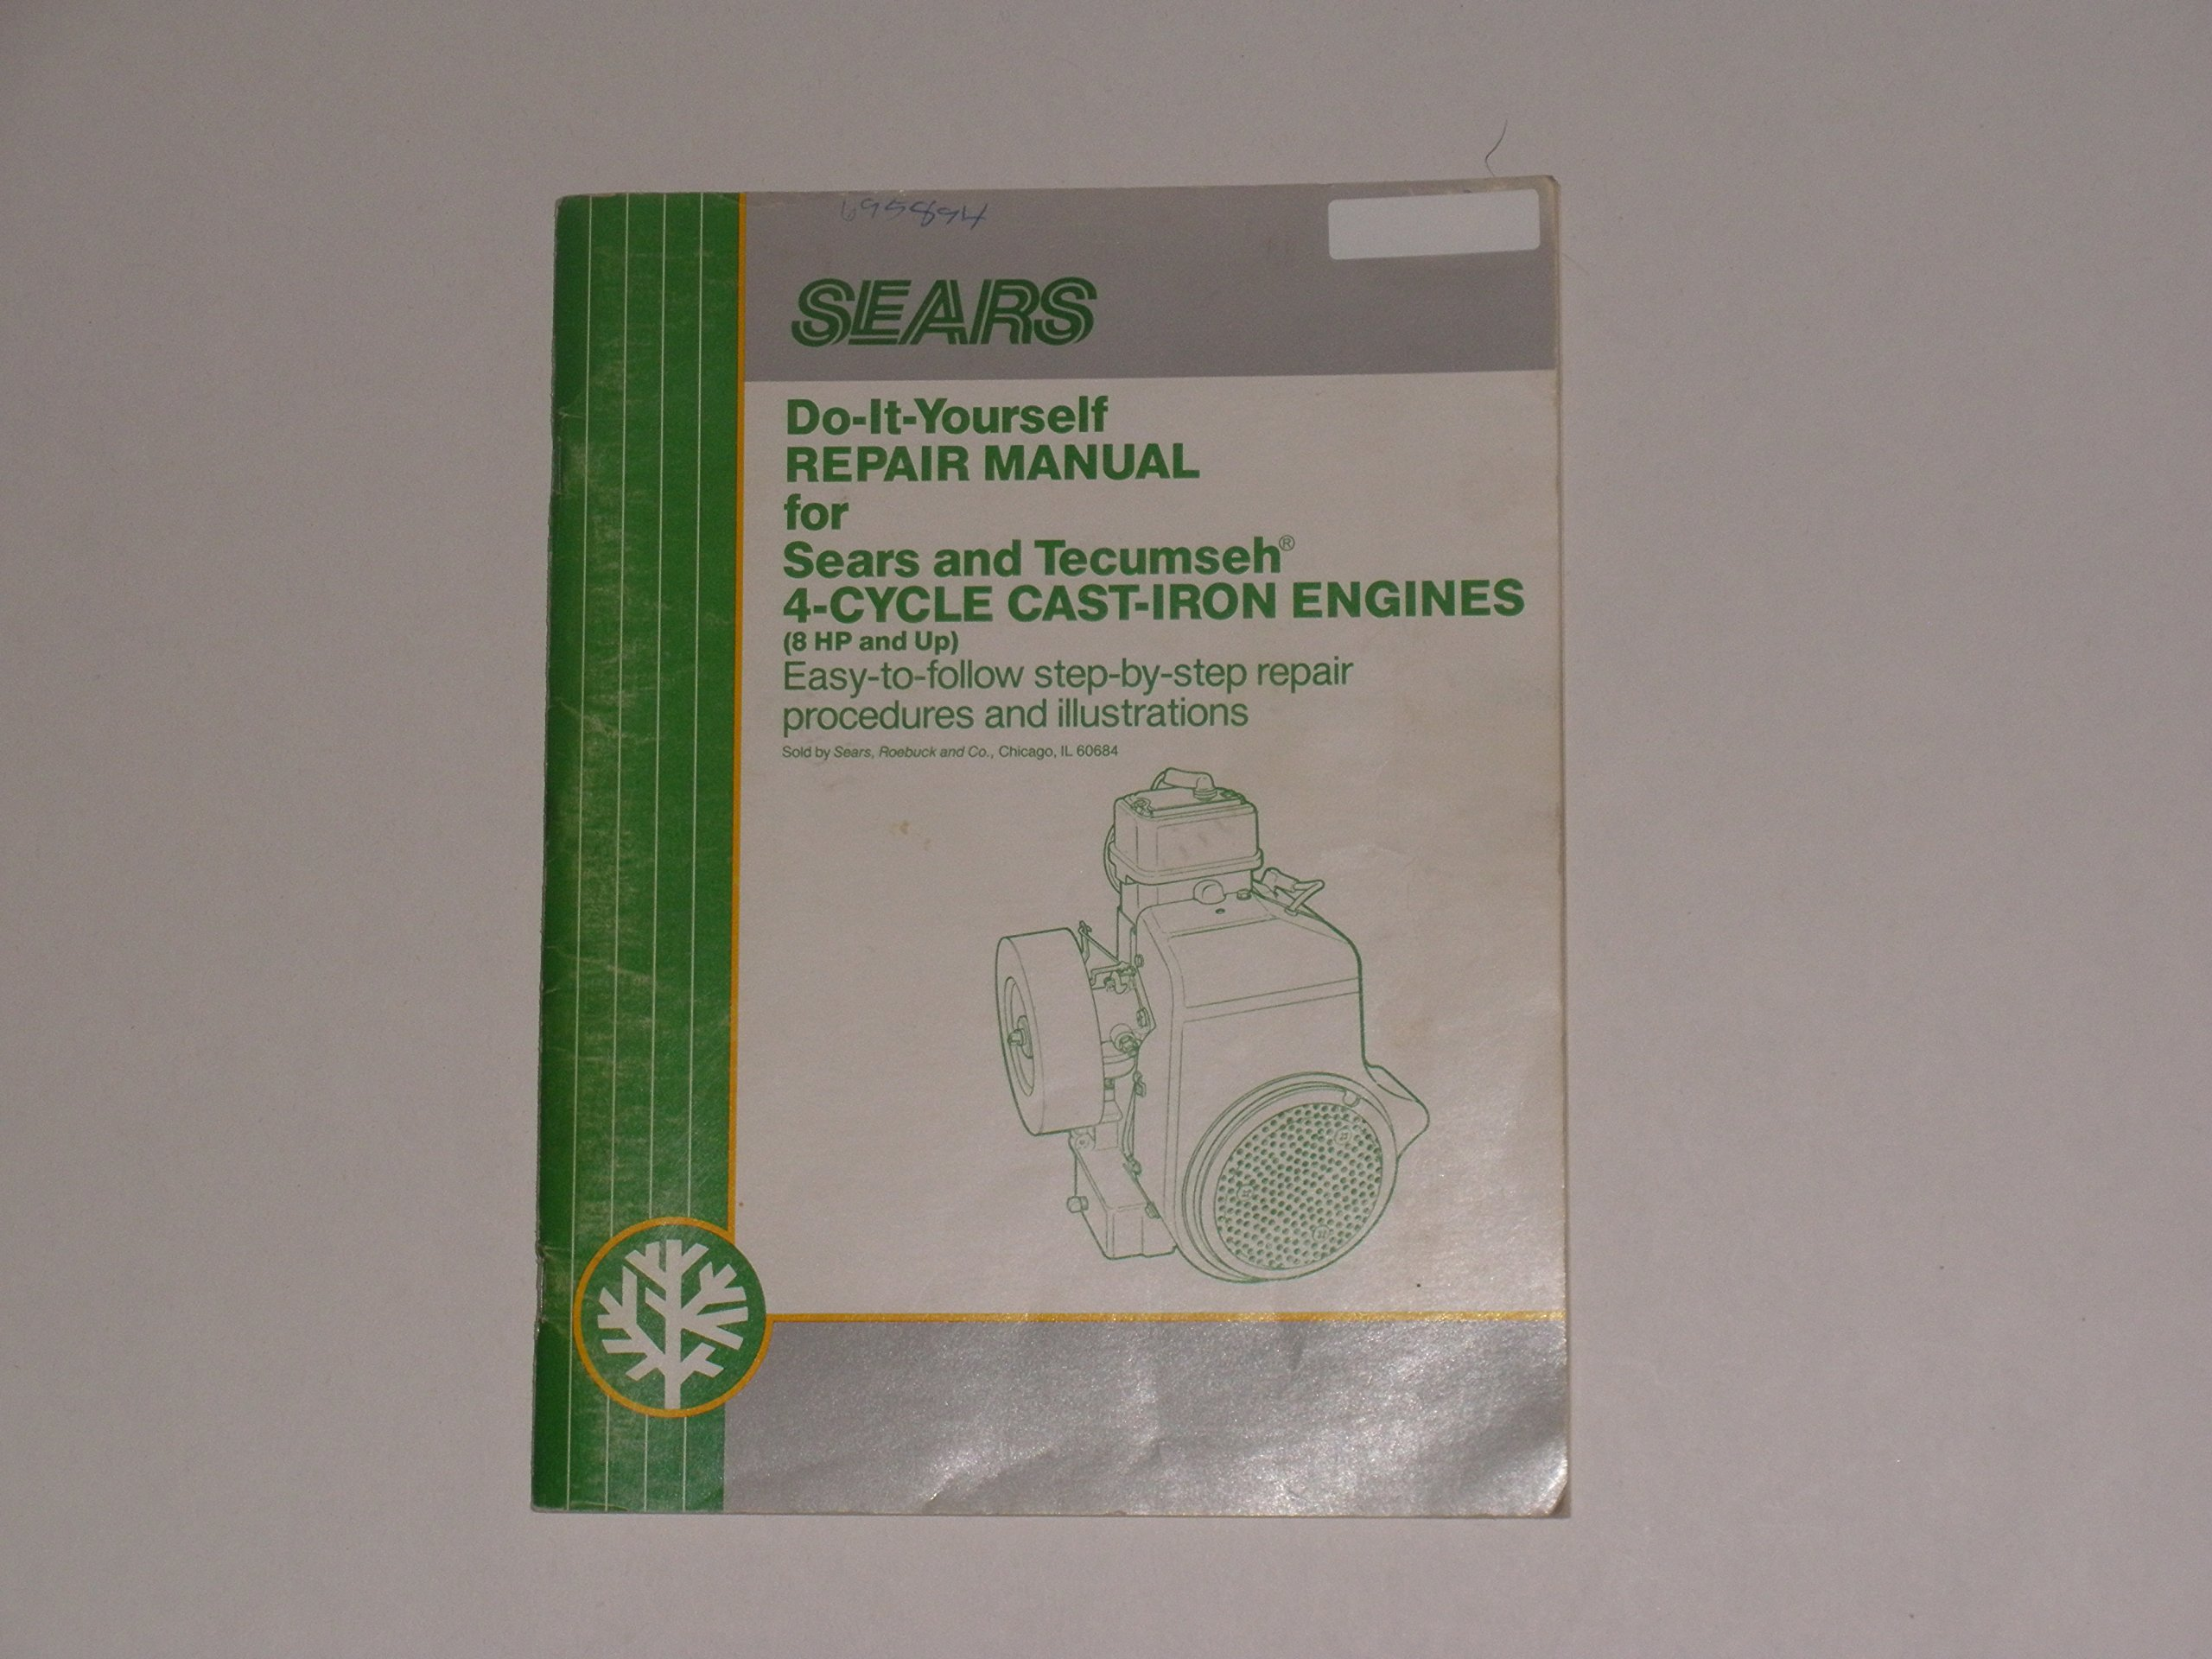 Sears do it yourself repair manual for sears and tecumseh 4 cycle sears do it yourself repair manual for sears and tecumseh 4 cycle cast iron engines 8hp and up easy to follow step by step repair procedures and solutioingenieria Choice Image